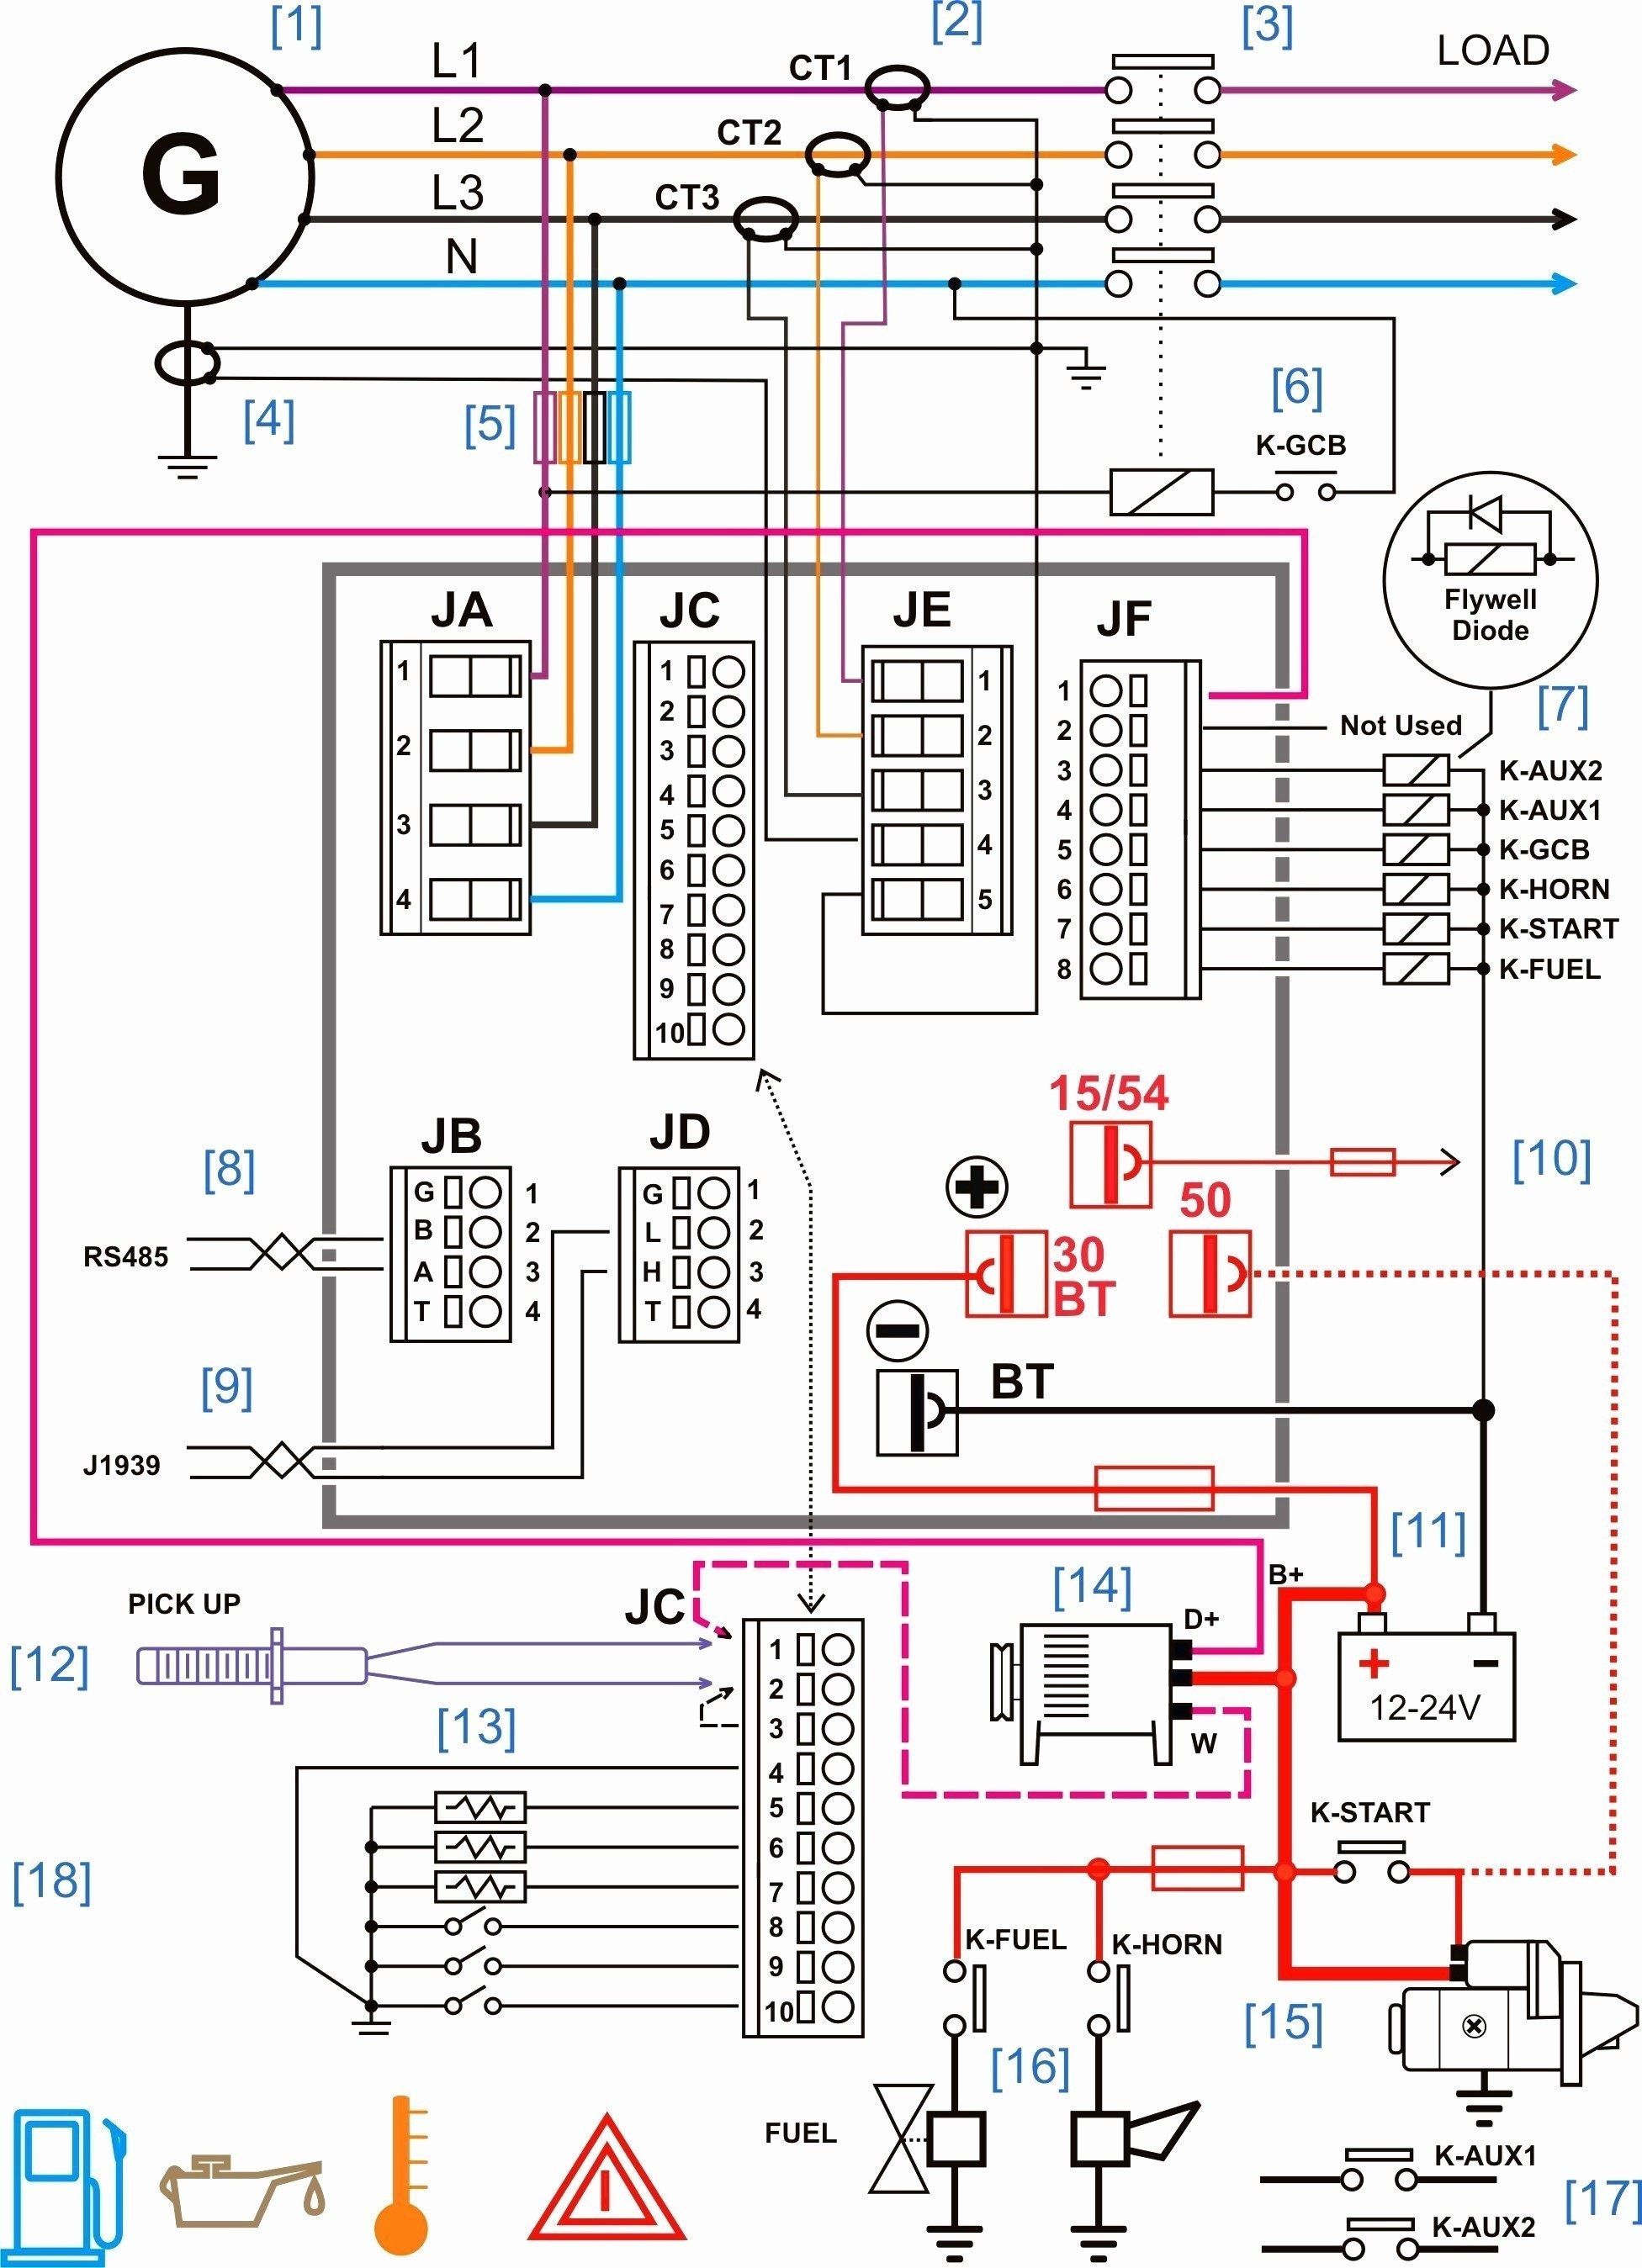 Control 4 Wiring Diagram Control 4 Wiring Diagram Simplified Shapes Wiring Diagram In A Car Of Control 4 Wiring Diagram